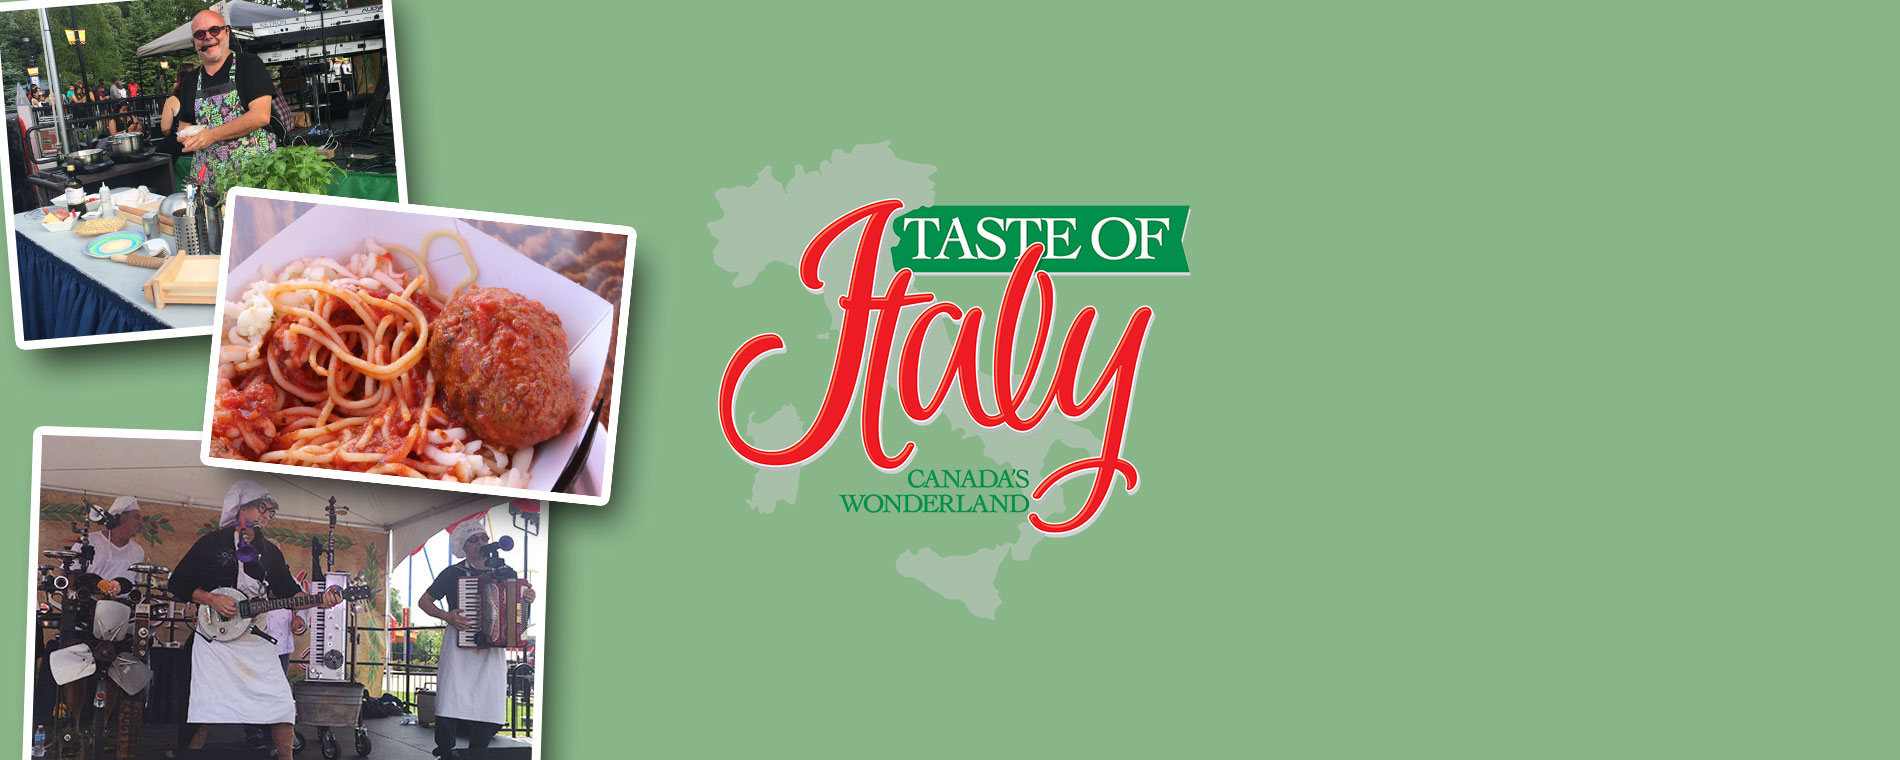 Taste of Italy at Canada's Wonderland